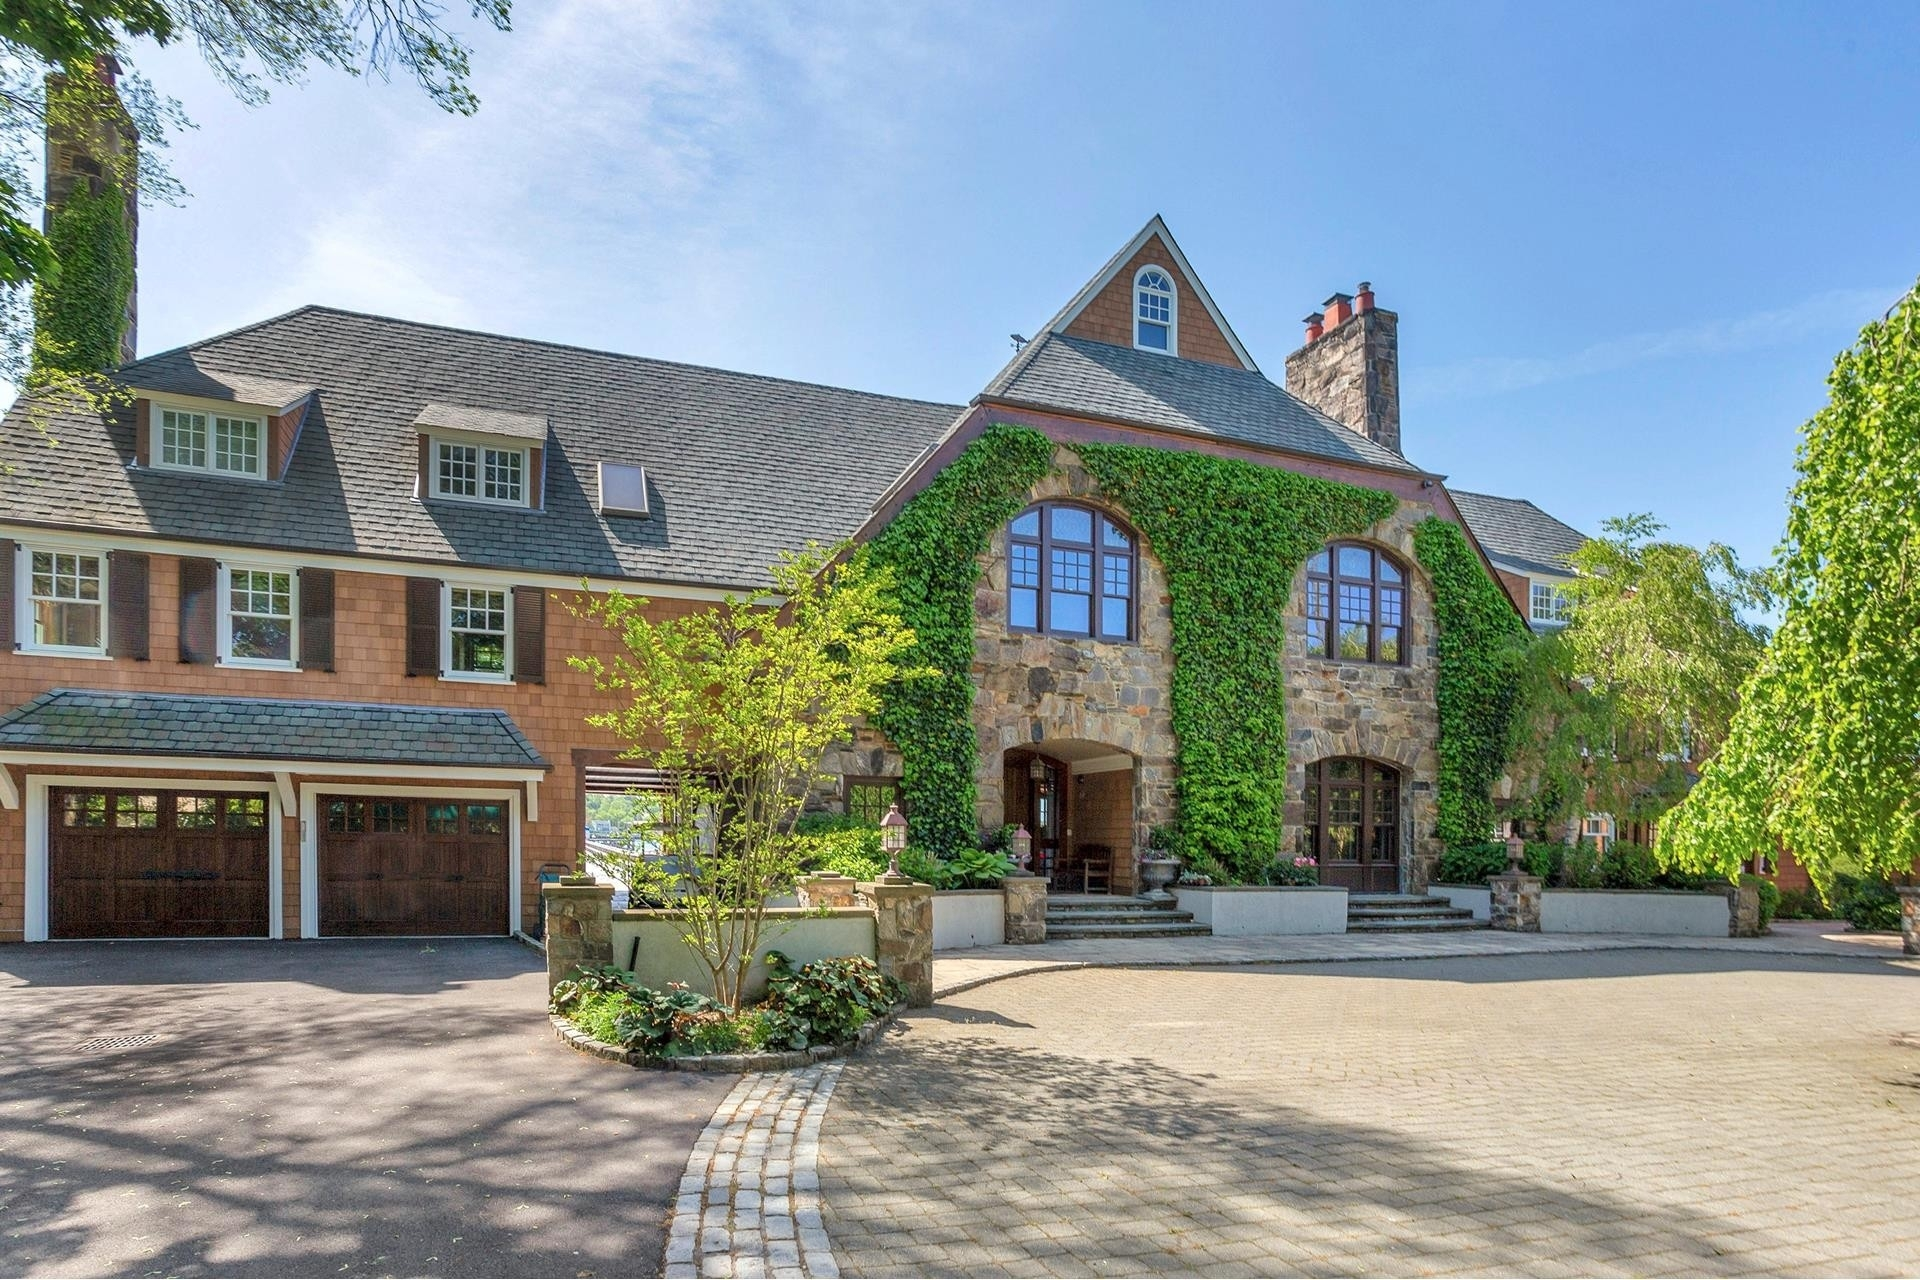 2. Single Family Homes for Sale at Plandome Manor, Manhasset, NY 11030